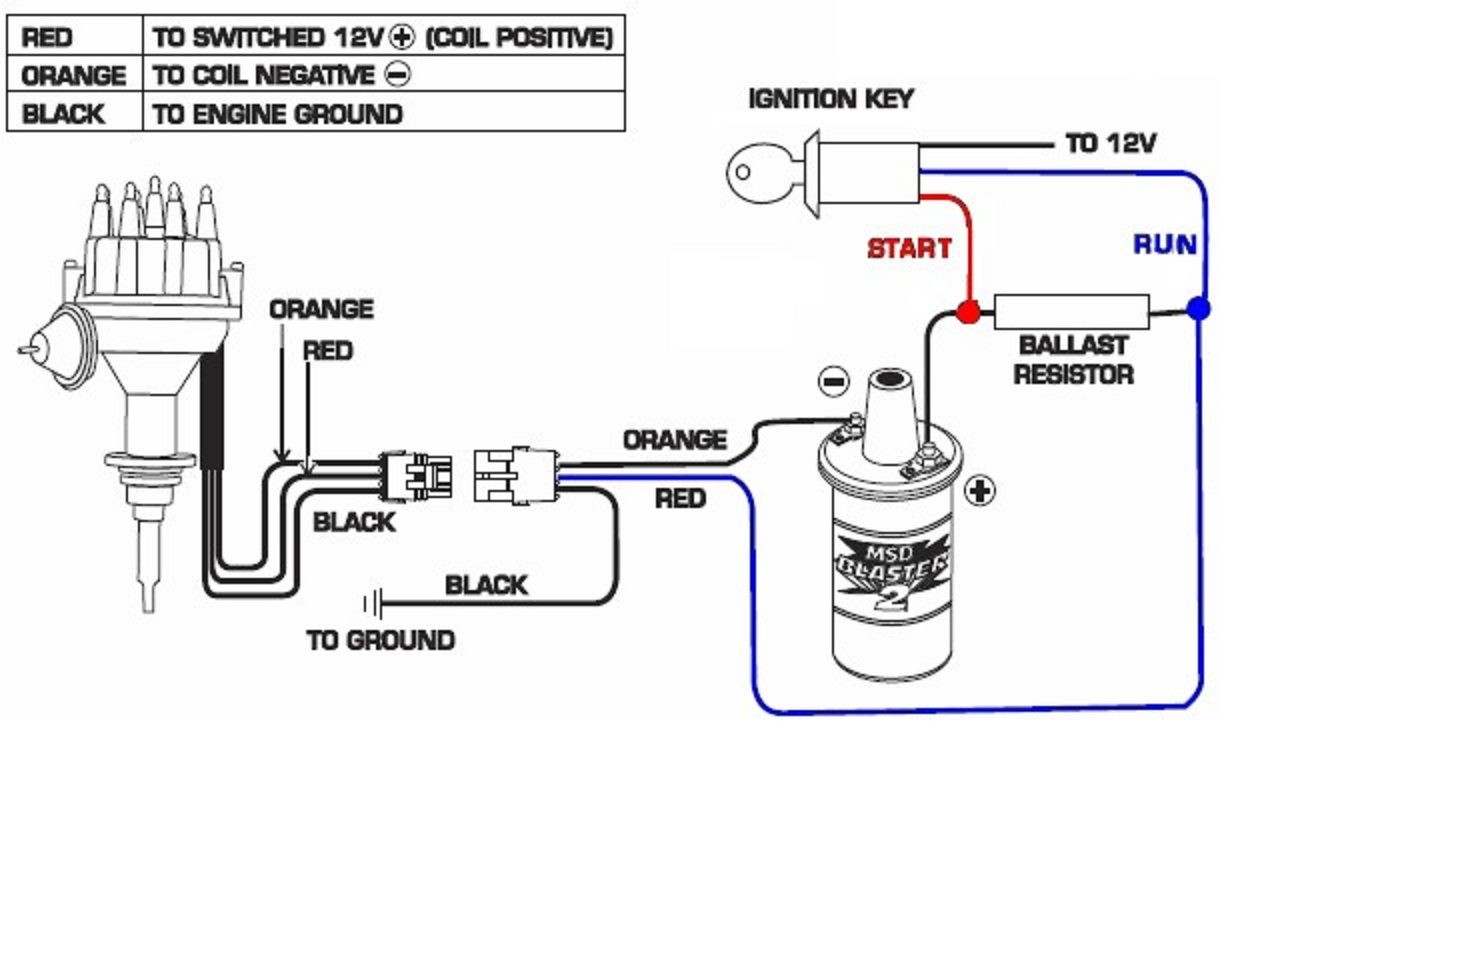 12 Volt Ignition Coil Wiring Diagram | Wiring Diagram Image